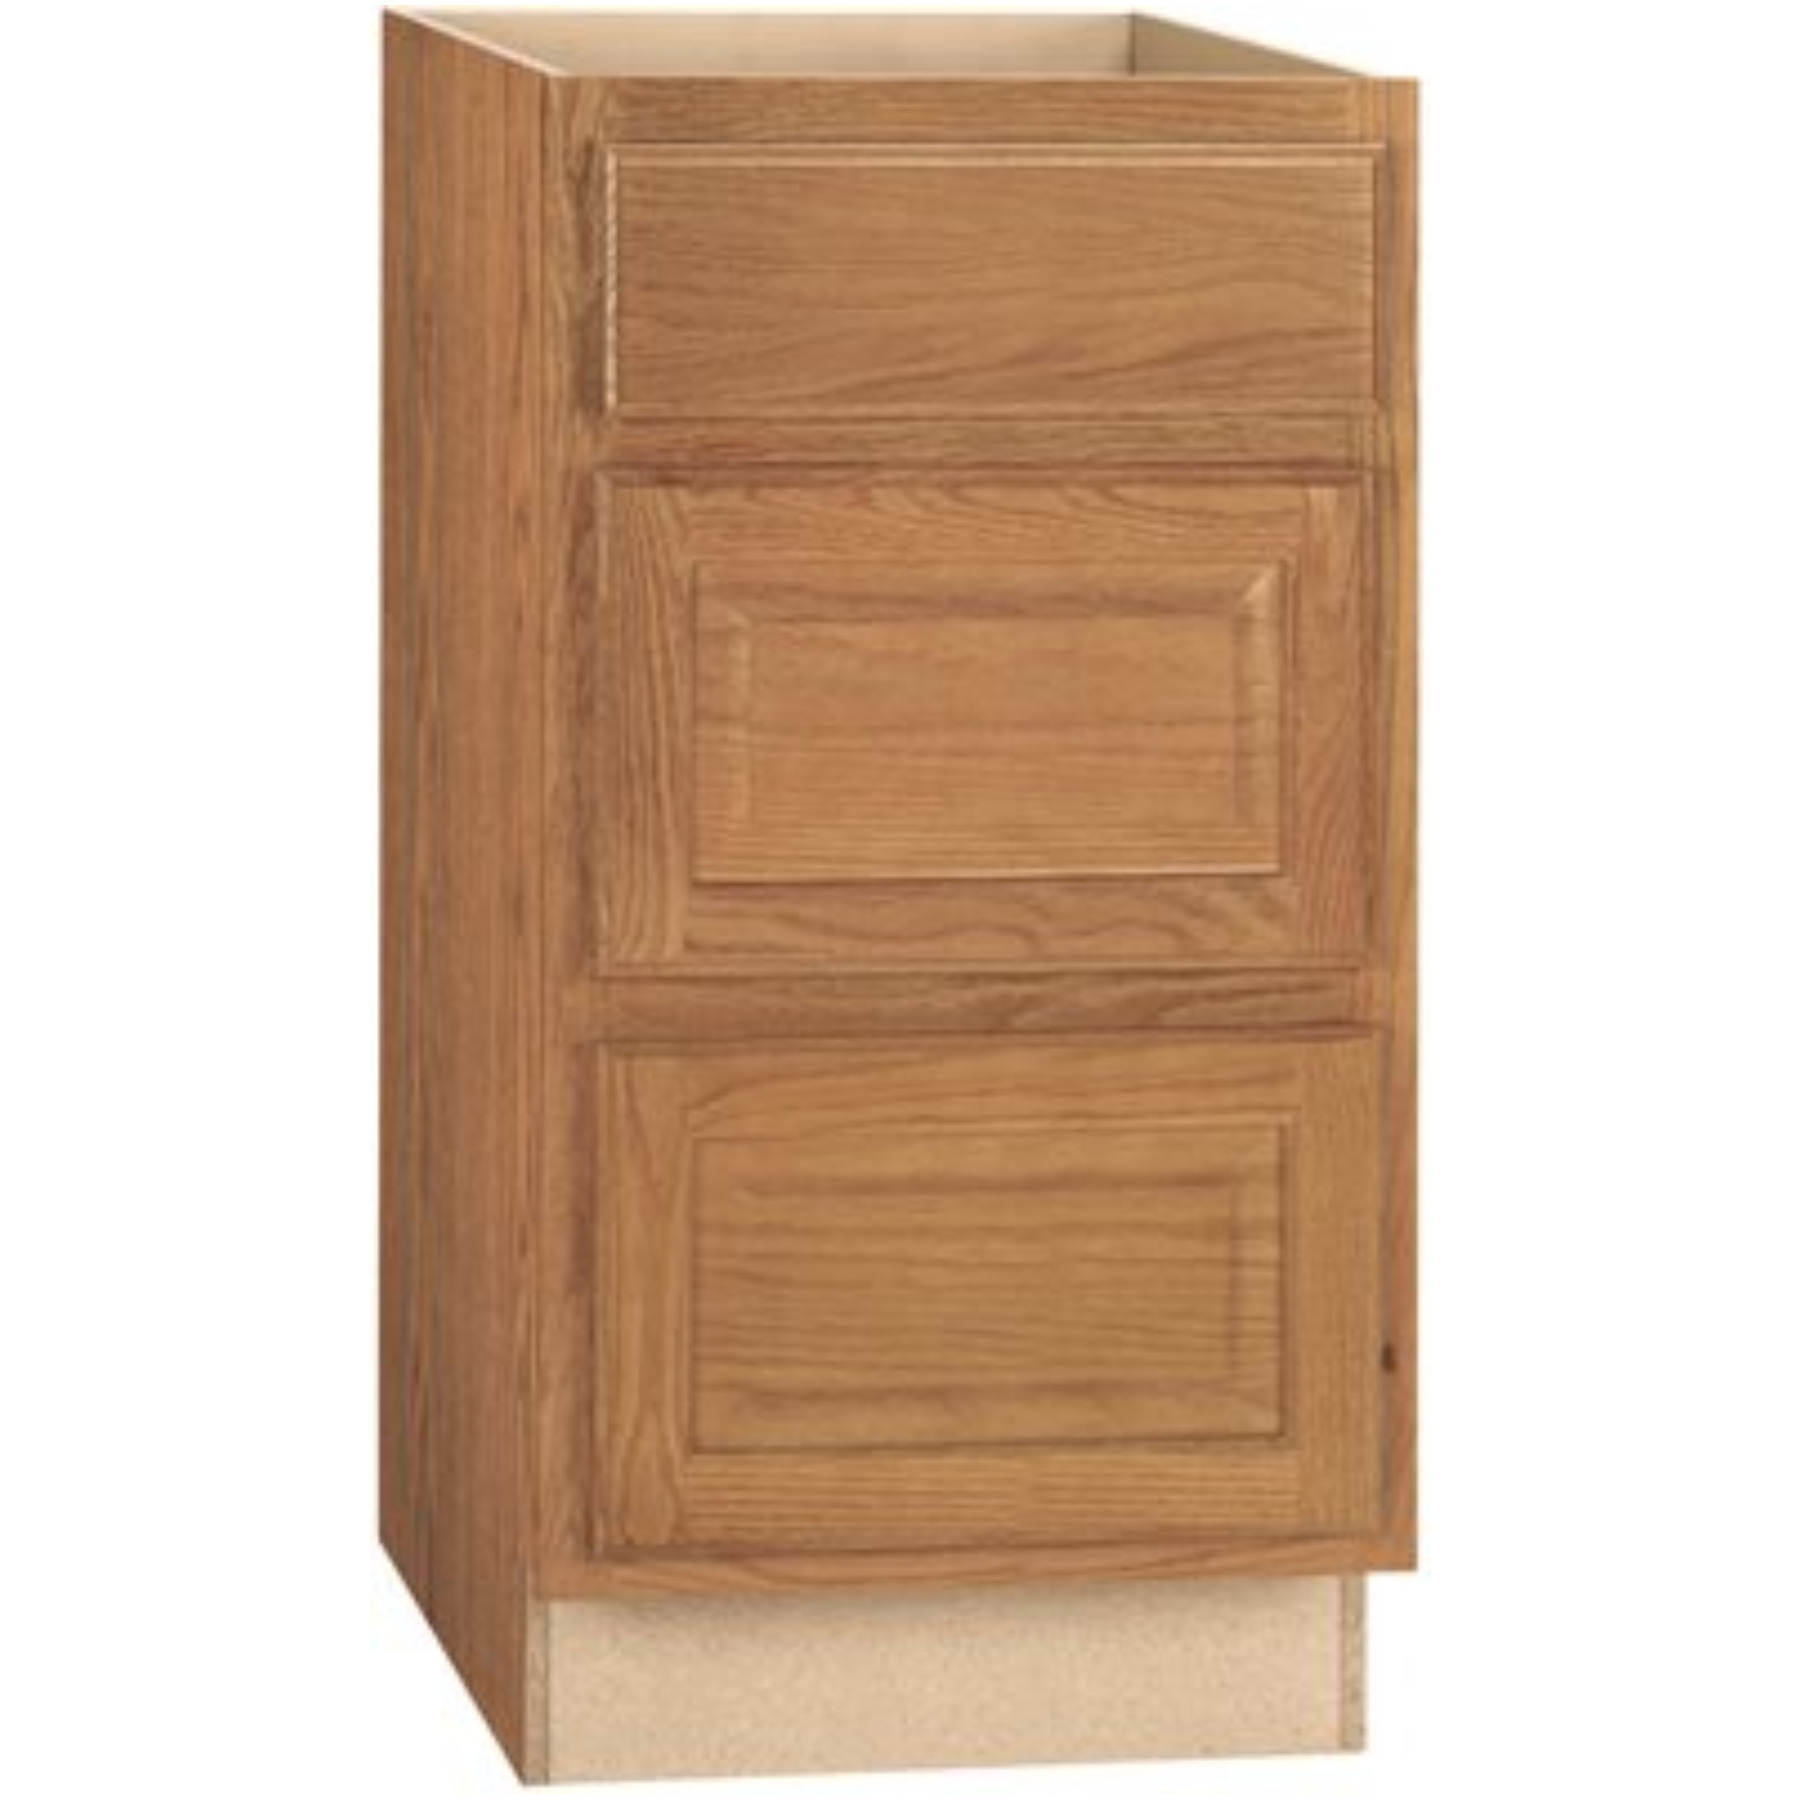 RSI HOME PRODUCTS HAMILTON DRAWER BASE CABINET, FULLY ASSEMBLED, RAISED PANEL, OAK, 24X34-1/2X24 IN.